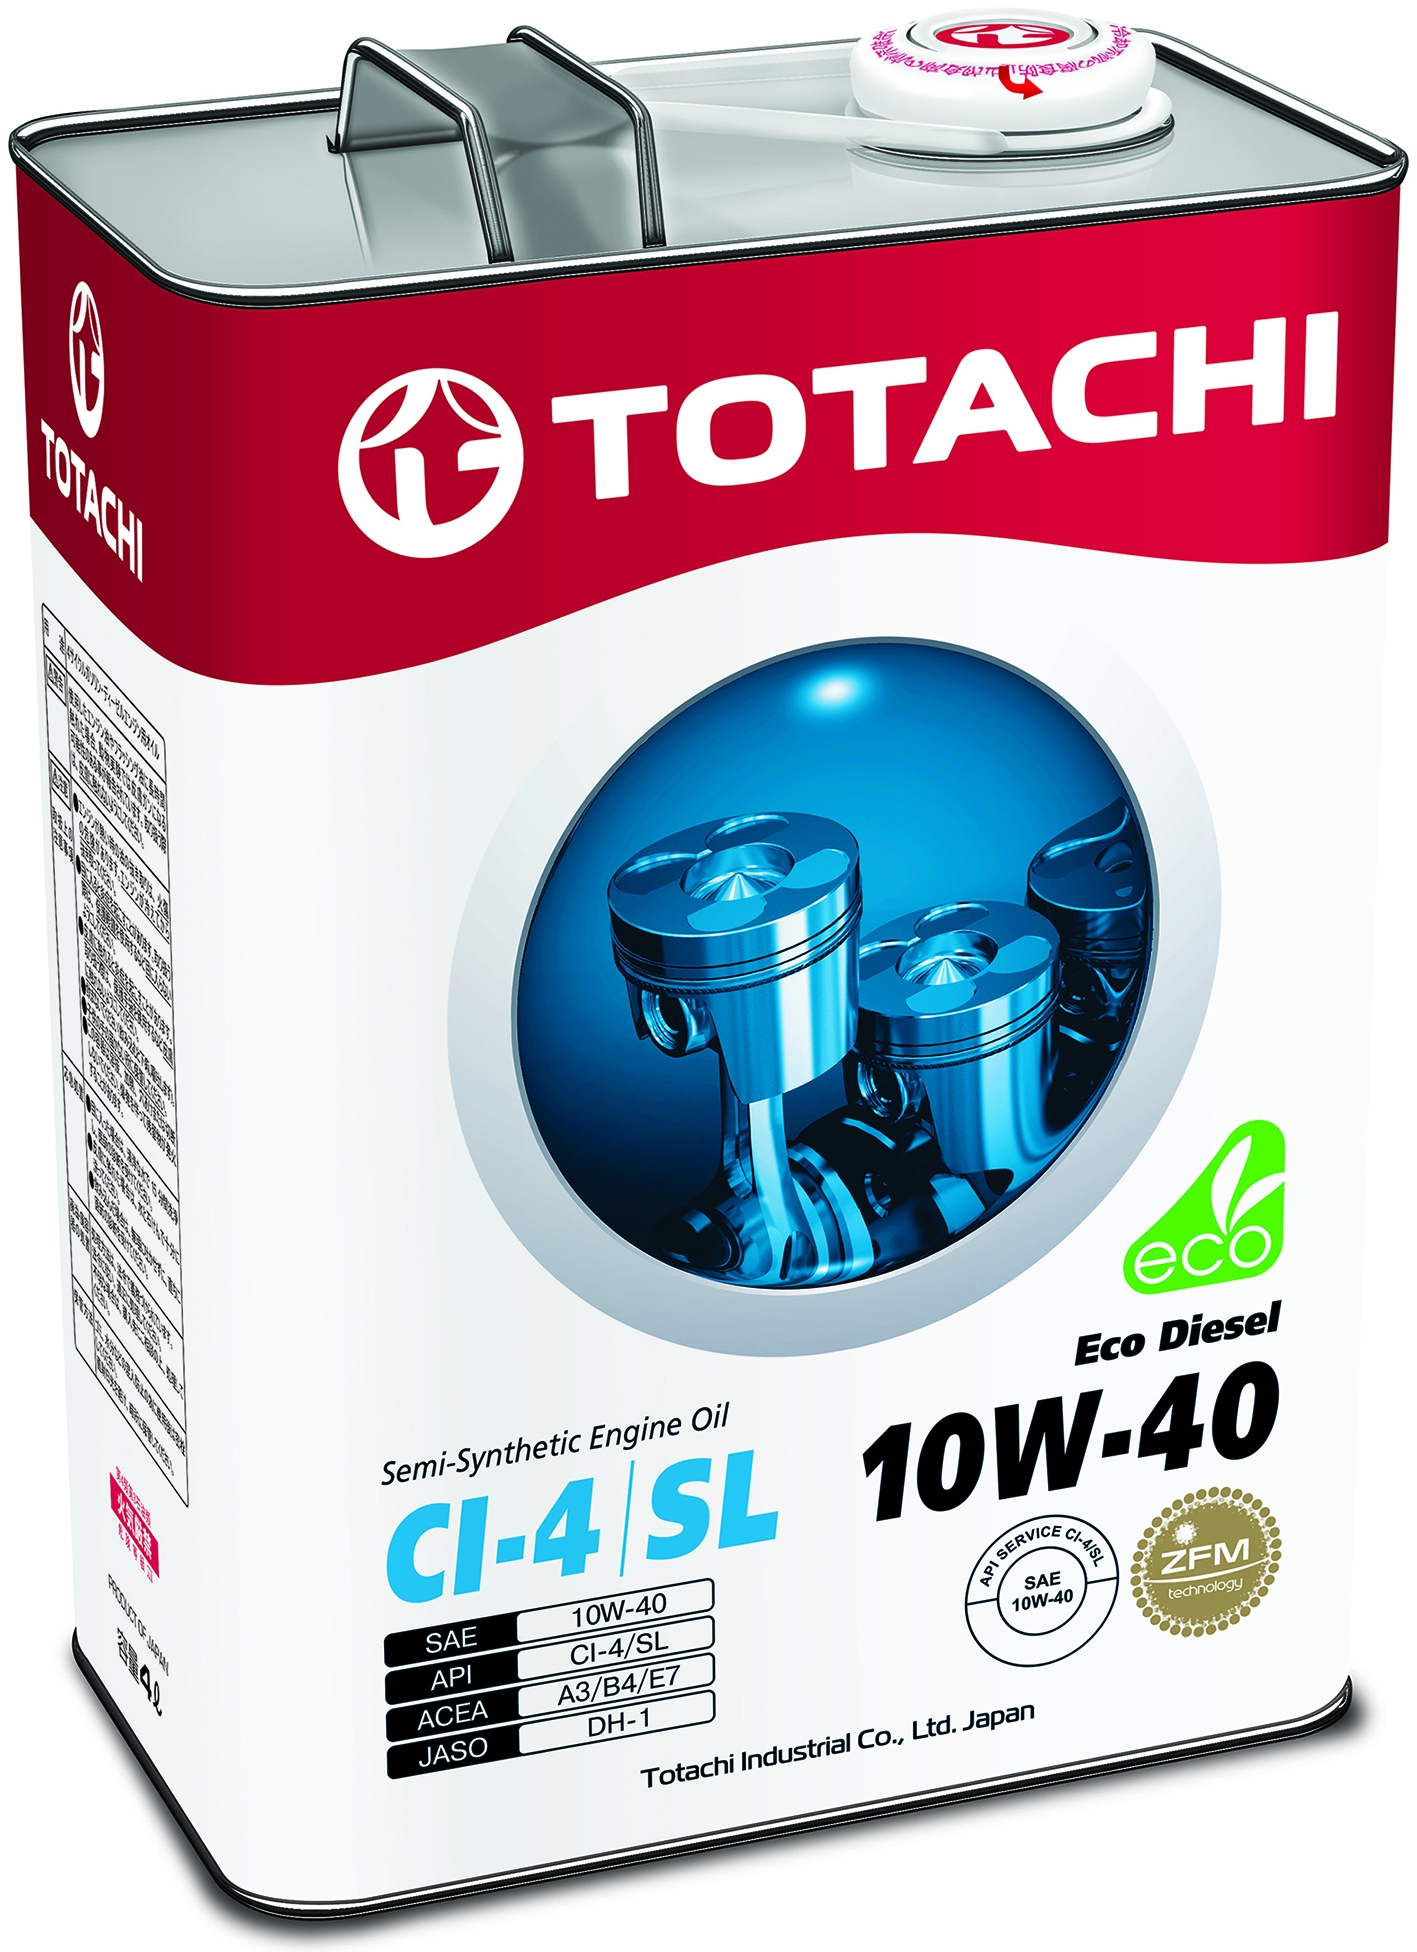 TOTACHI Eco DIESEL, 10W-40, CI-4/SL, полусинтетика,4л, Япония